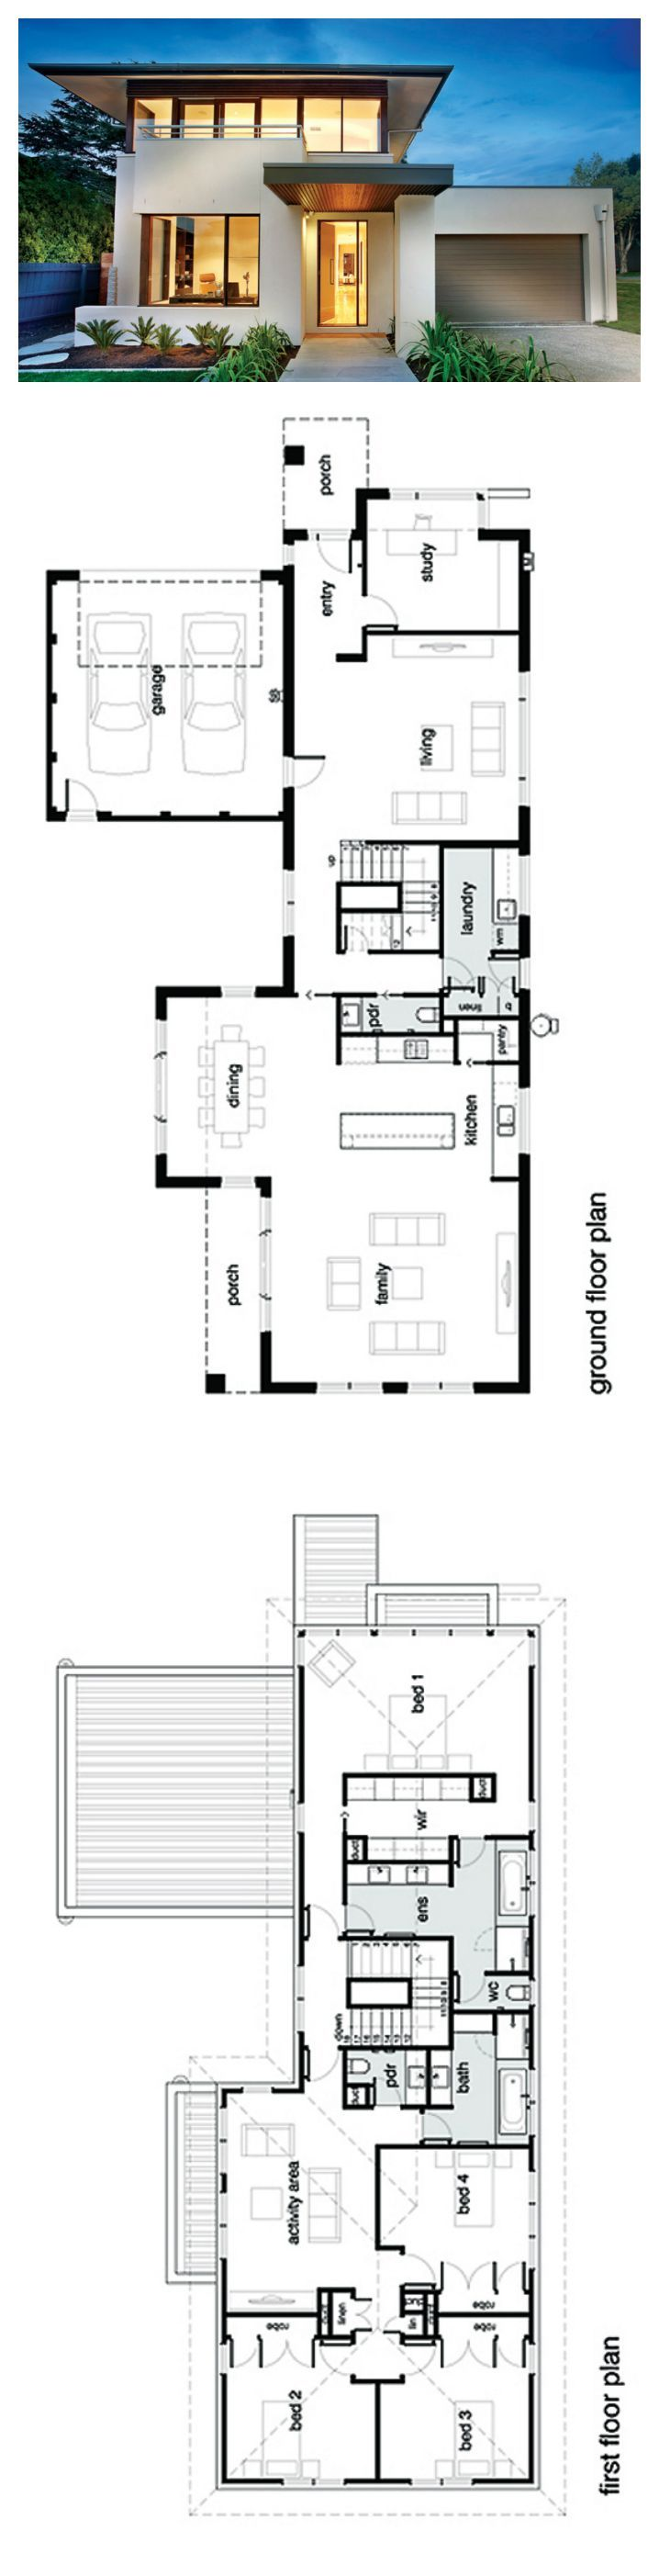 Best 25 modern house plans ideas on pinterest modern for 4 bedroom modern house plans